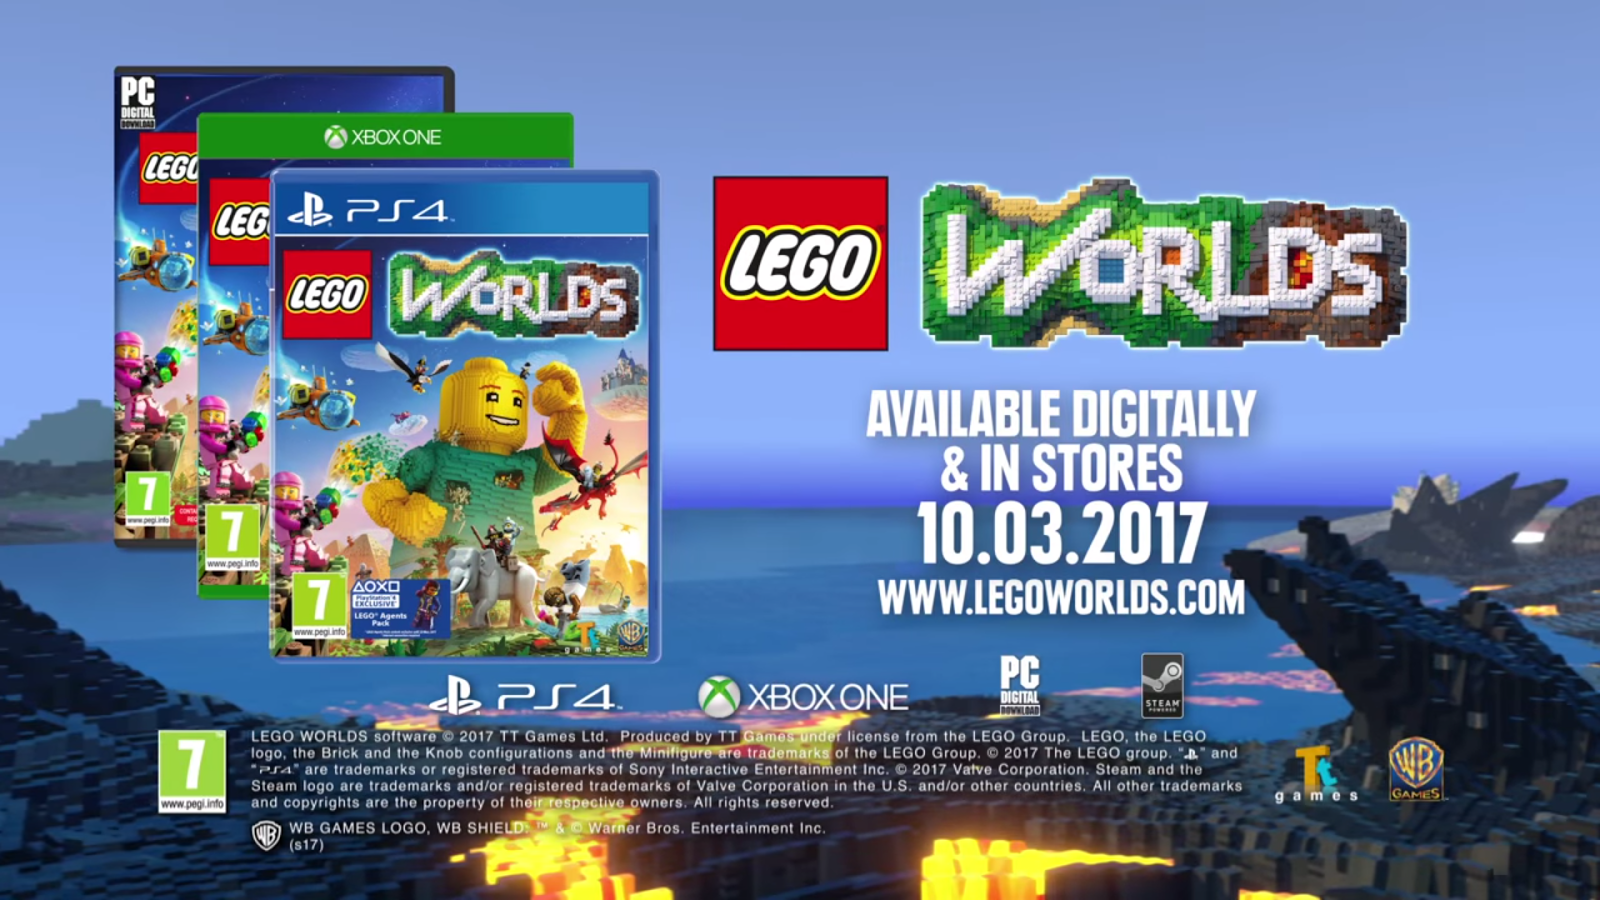 WARNER BROS  INTERACTIVE ENTERTAINMENT  TT GAMES AND THE LEGO GROUP     Interactive Entertainment  TT Games and The LEGO     Group today announced  that LEGO     Worlds  a galaxy of imaginative worlds made of digital LEGO      bricks where